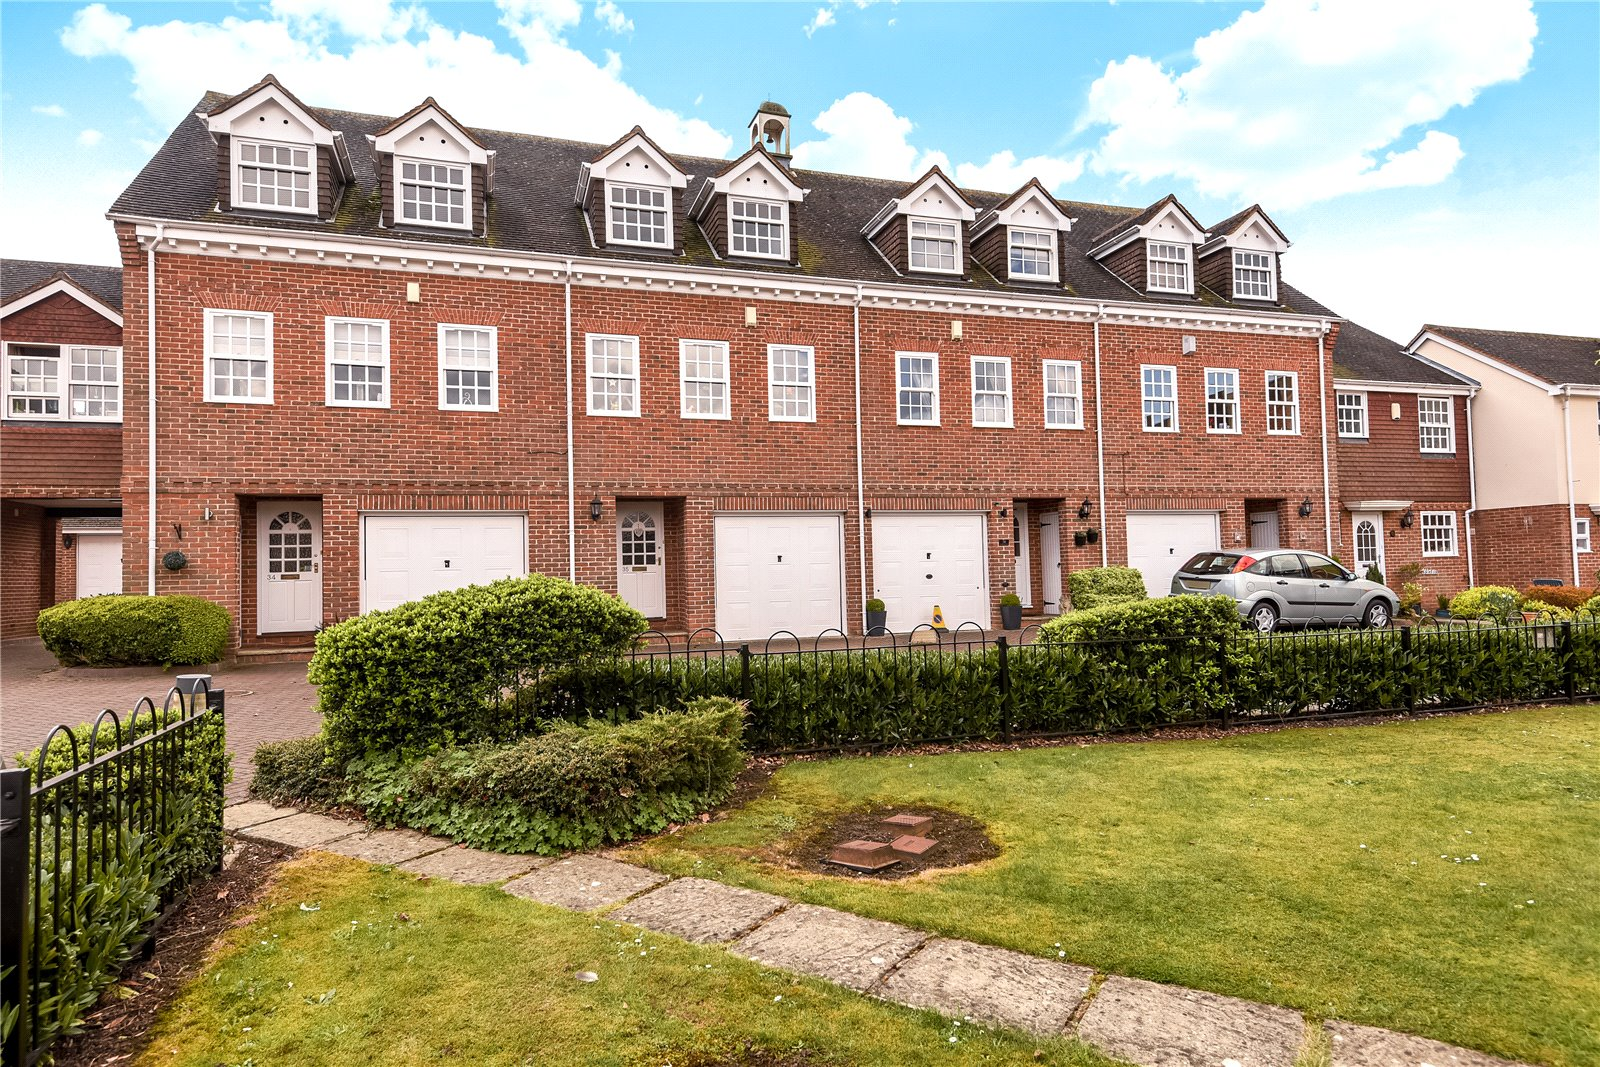 4 Bedrooms Terraced House for sale in Calcott Park, Yateley, Hampshire, GU46